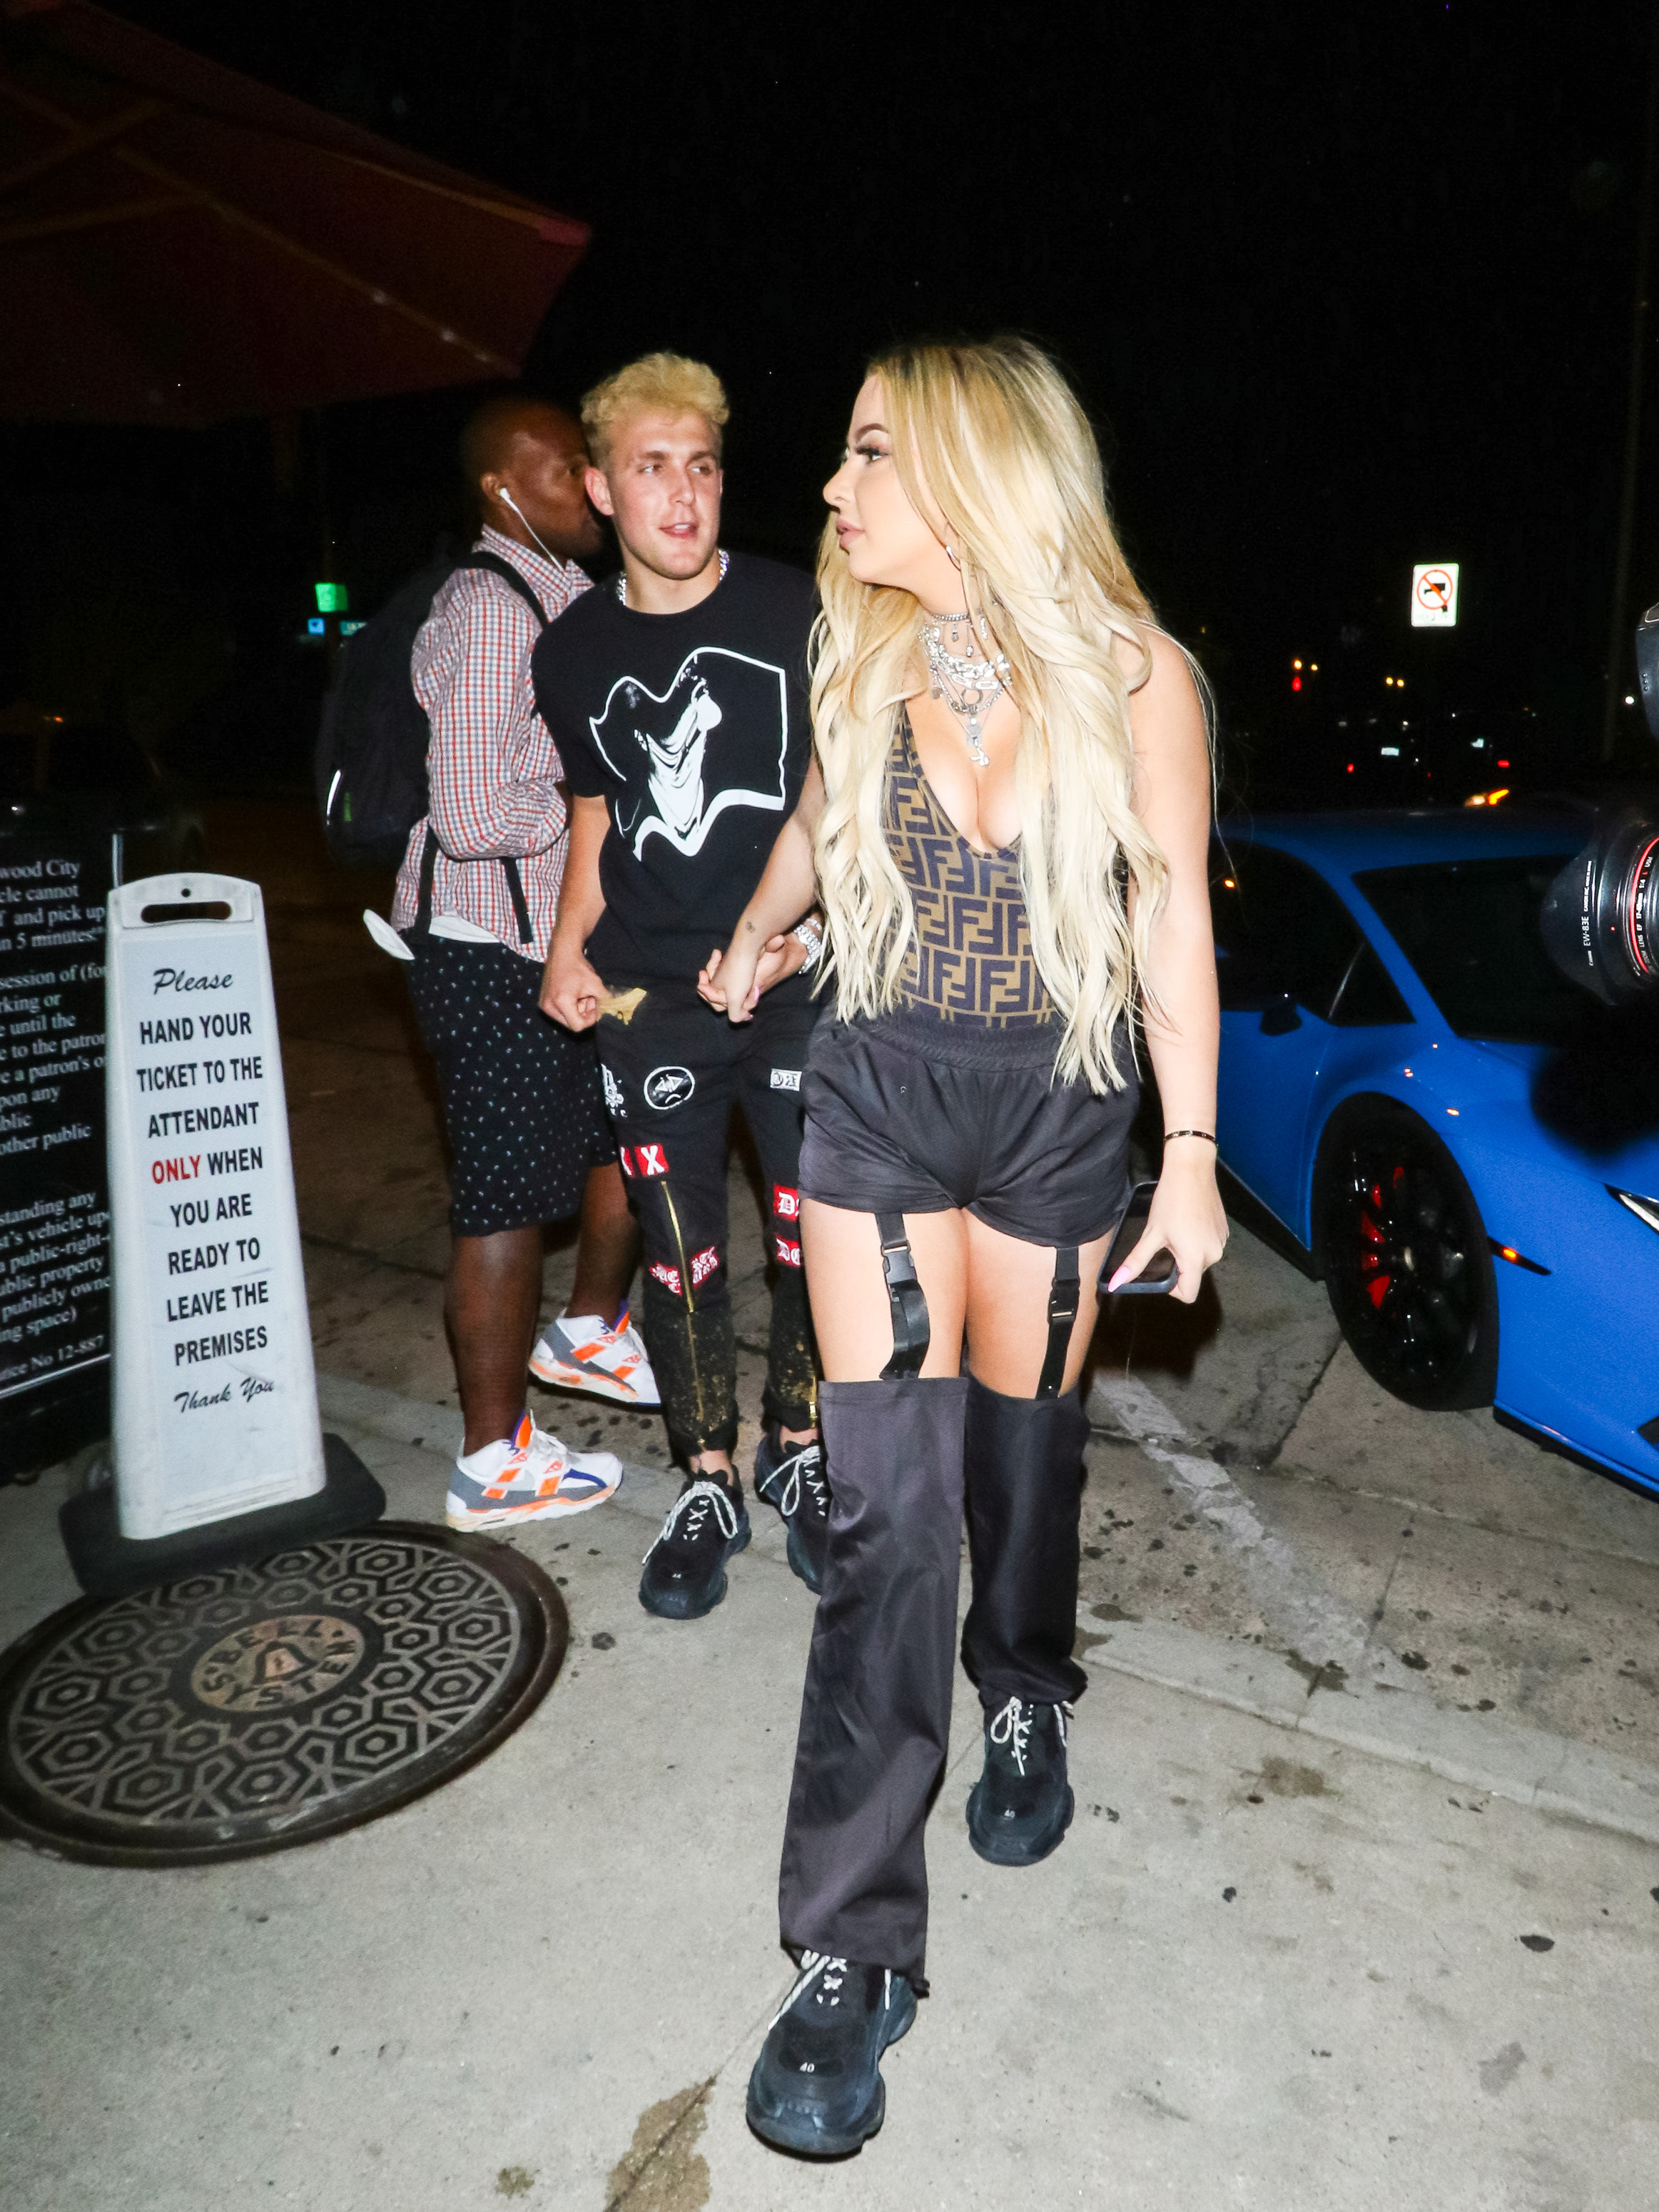 Https Www Lifeandstylemag Com Posts Sophie Turner And Joe Jonas